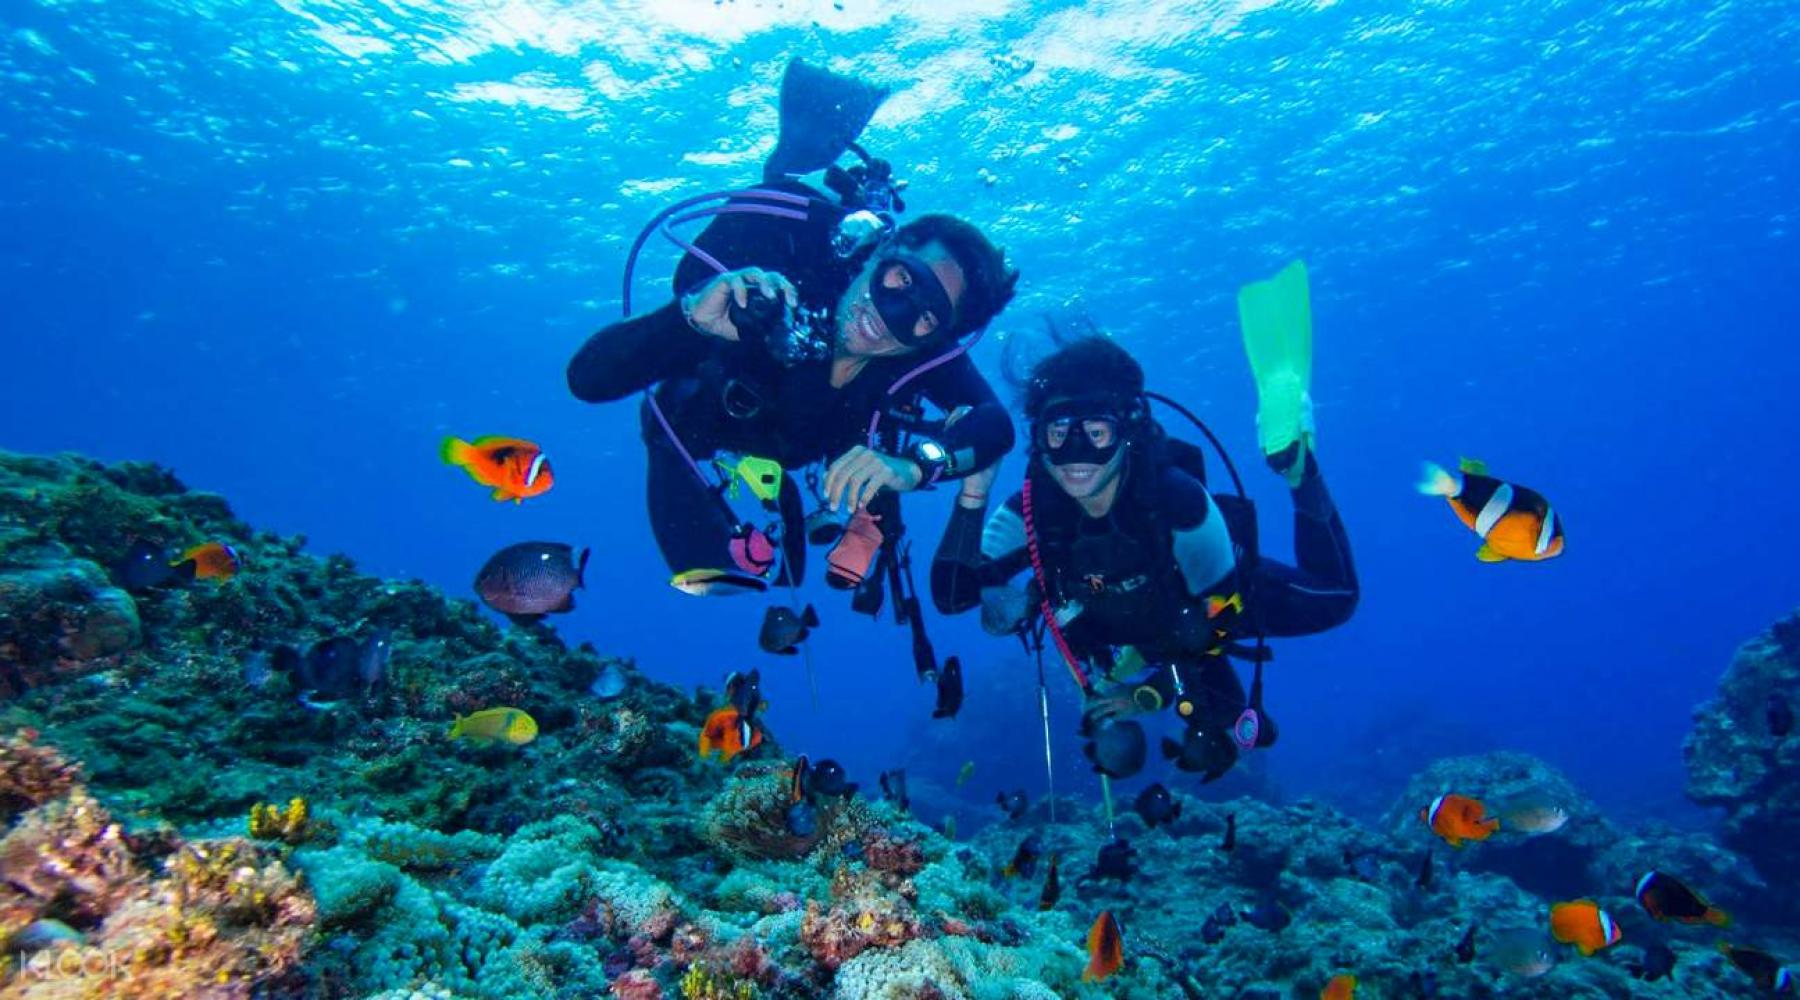 3D2N - Vesak Day, TRY DIVING, Official Padi Half Day Course @ East Tioman  starting at Tioman Island, Pahang, Malaysia